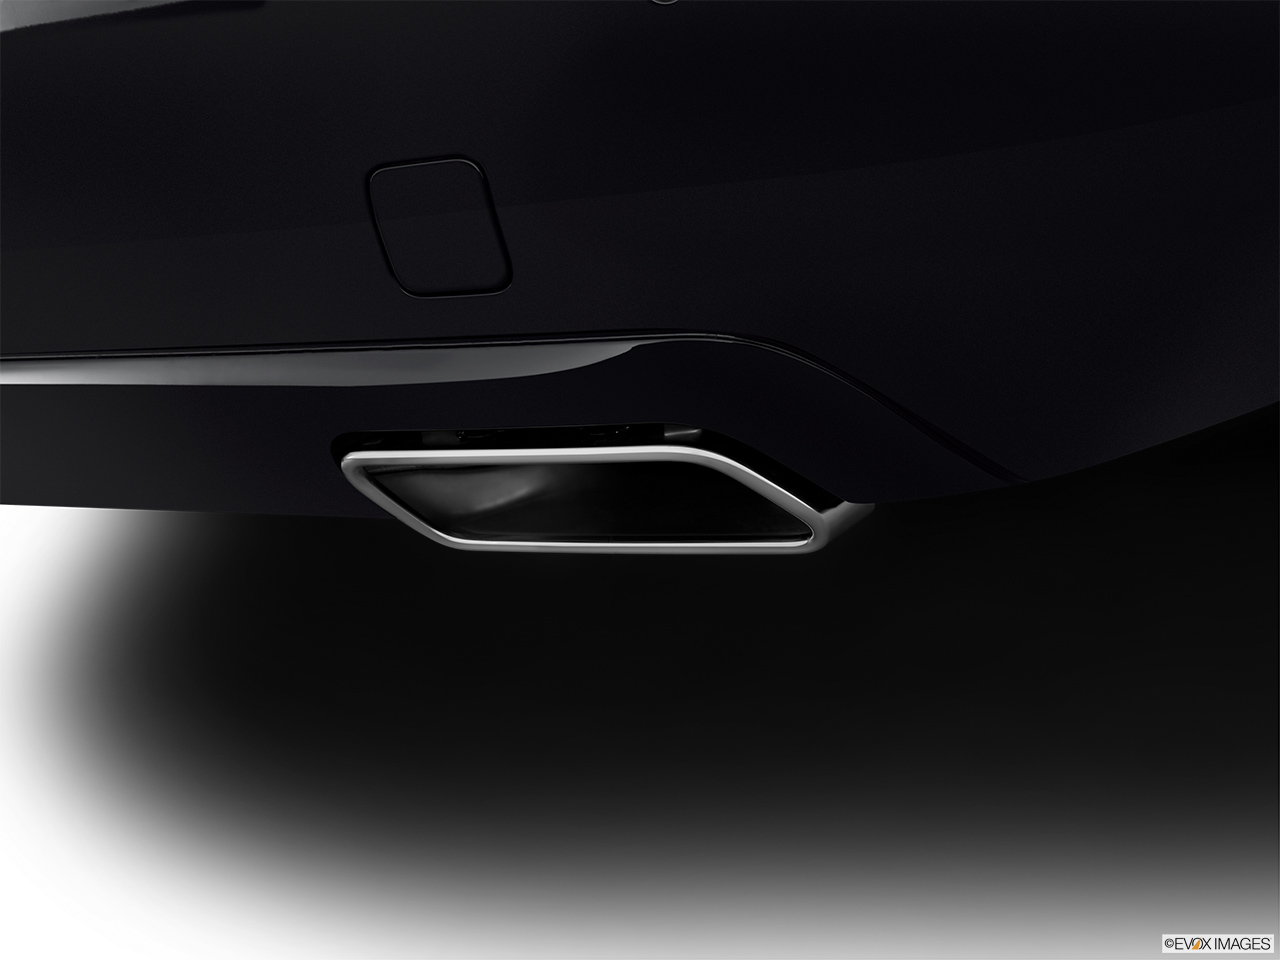 2012 Mercedes-Benz S-Class Hybrid S400 Chrome tip exhaust pipe.